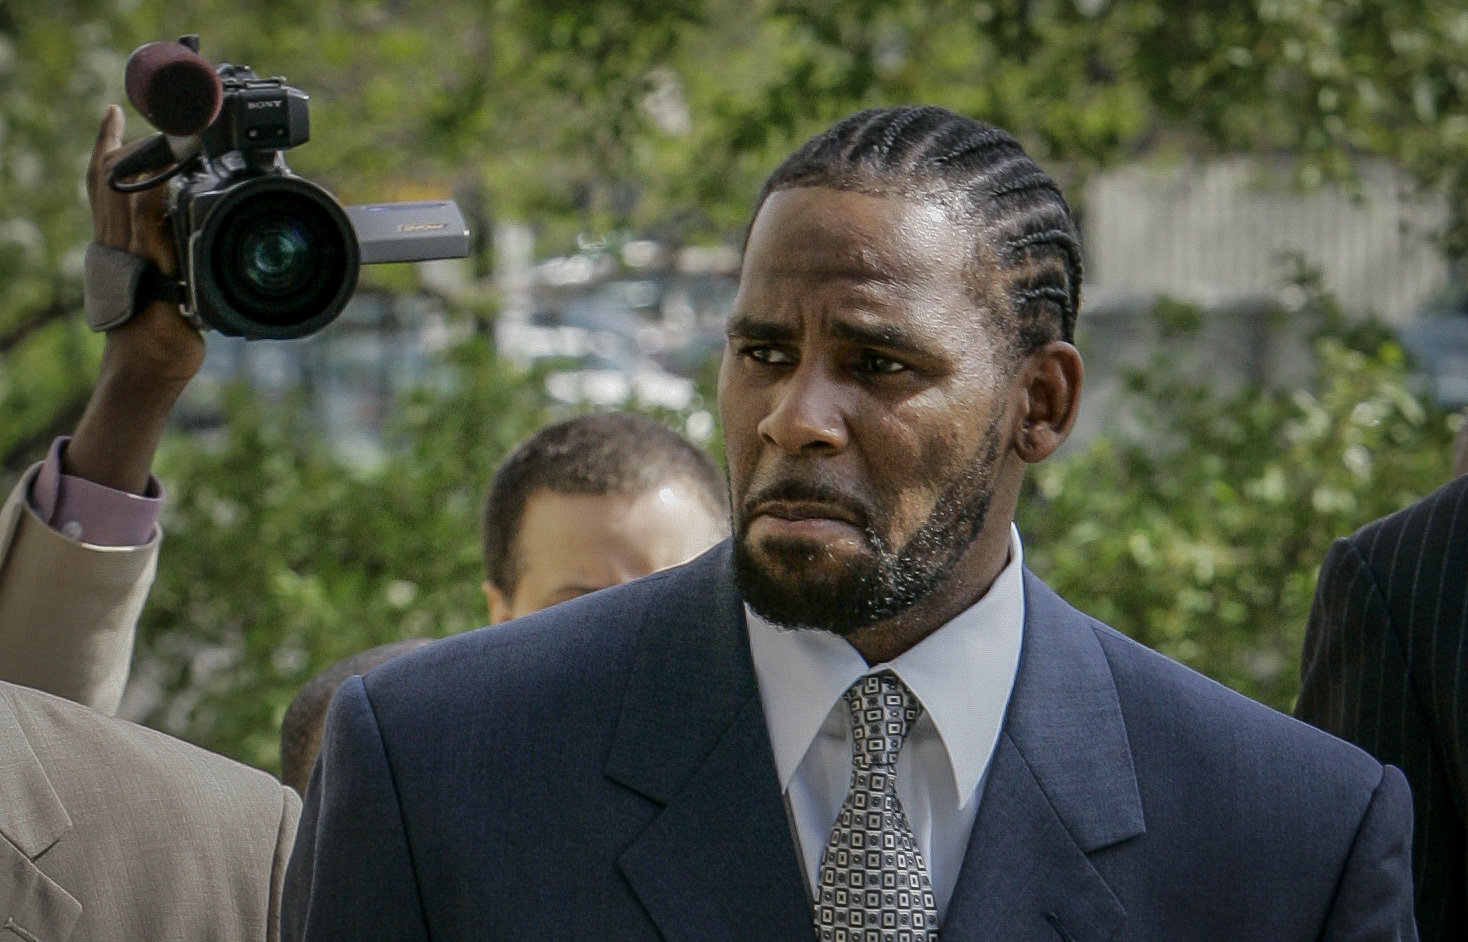 This photo from Friday May 9, 2008, shows R. Kelly arriving for the first day of jury selection in his child pornography trial at the Cook County Criminal Courthouse in Chicago. (Charles Rex Arbogast/Associated Press)